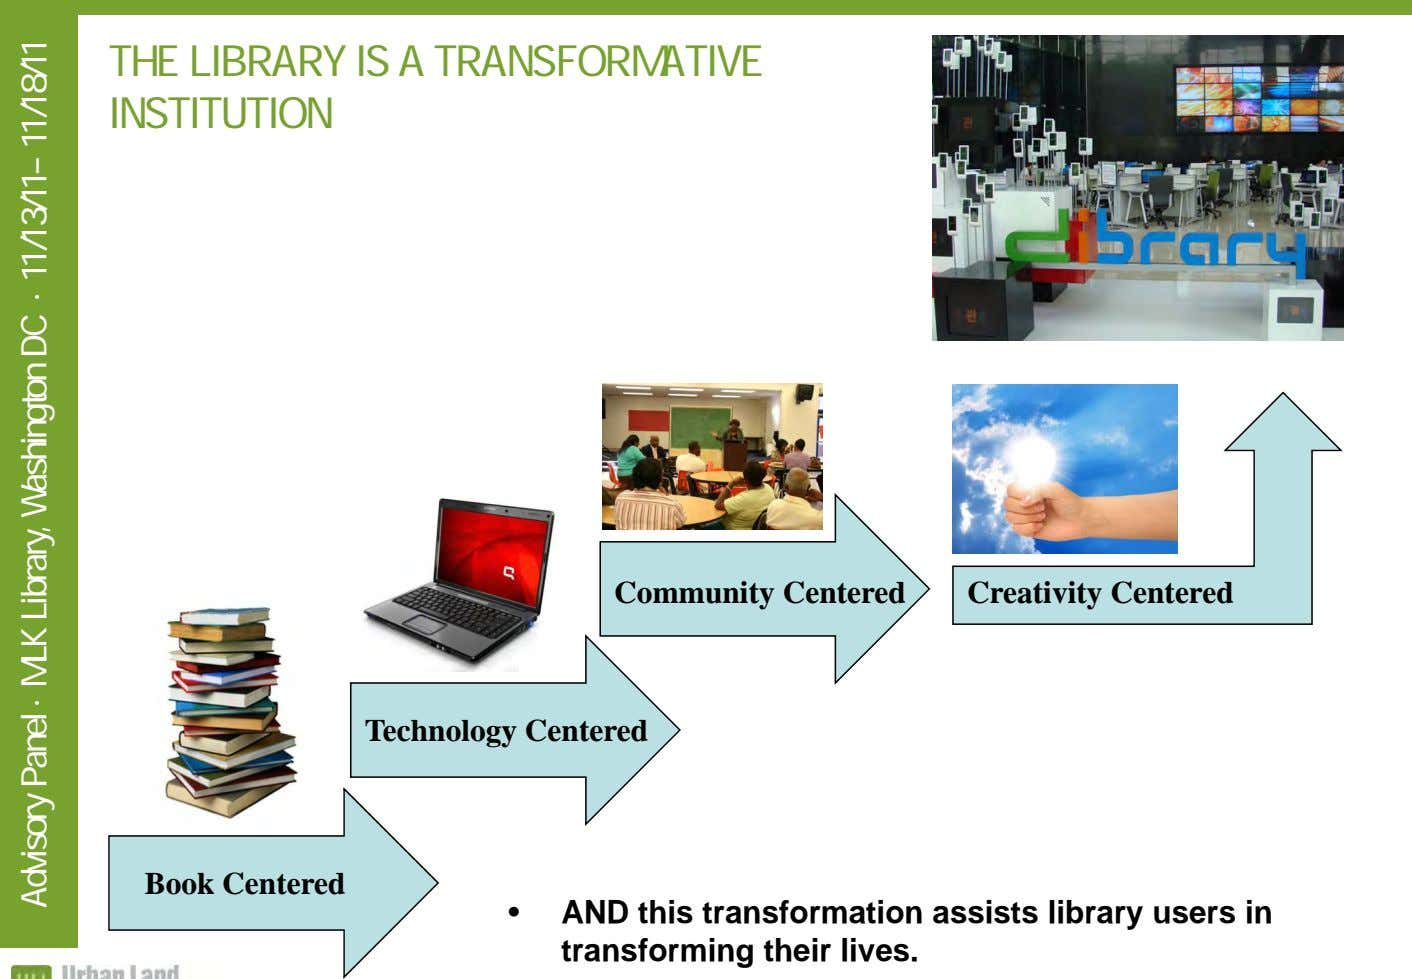 THE LIBRARY IS A TRANSFORMATIVE INSTITUTION Community Centered Creativity Centered Technology Centered Book Centered